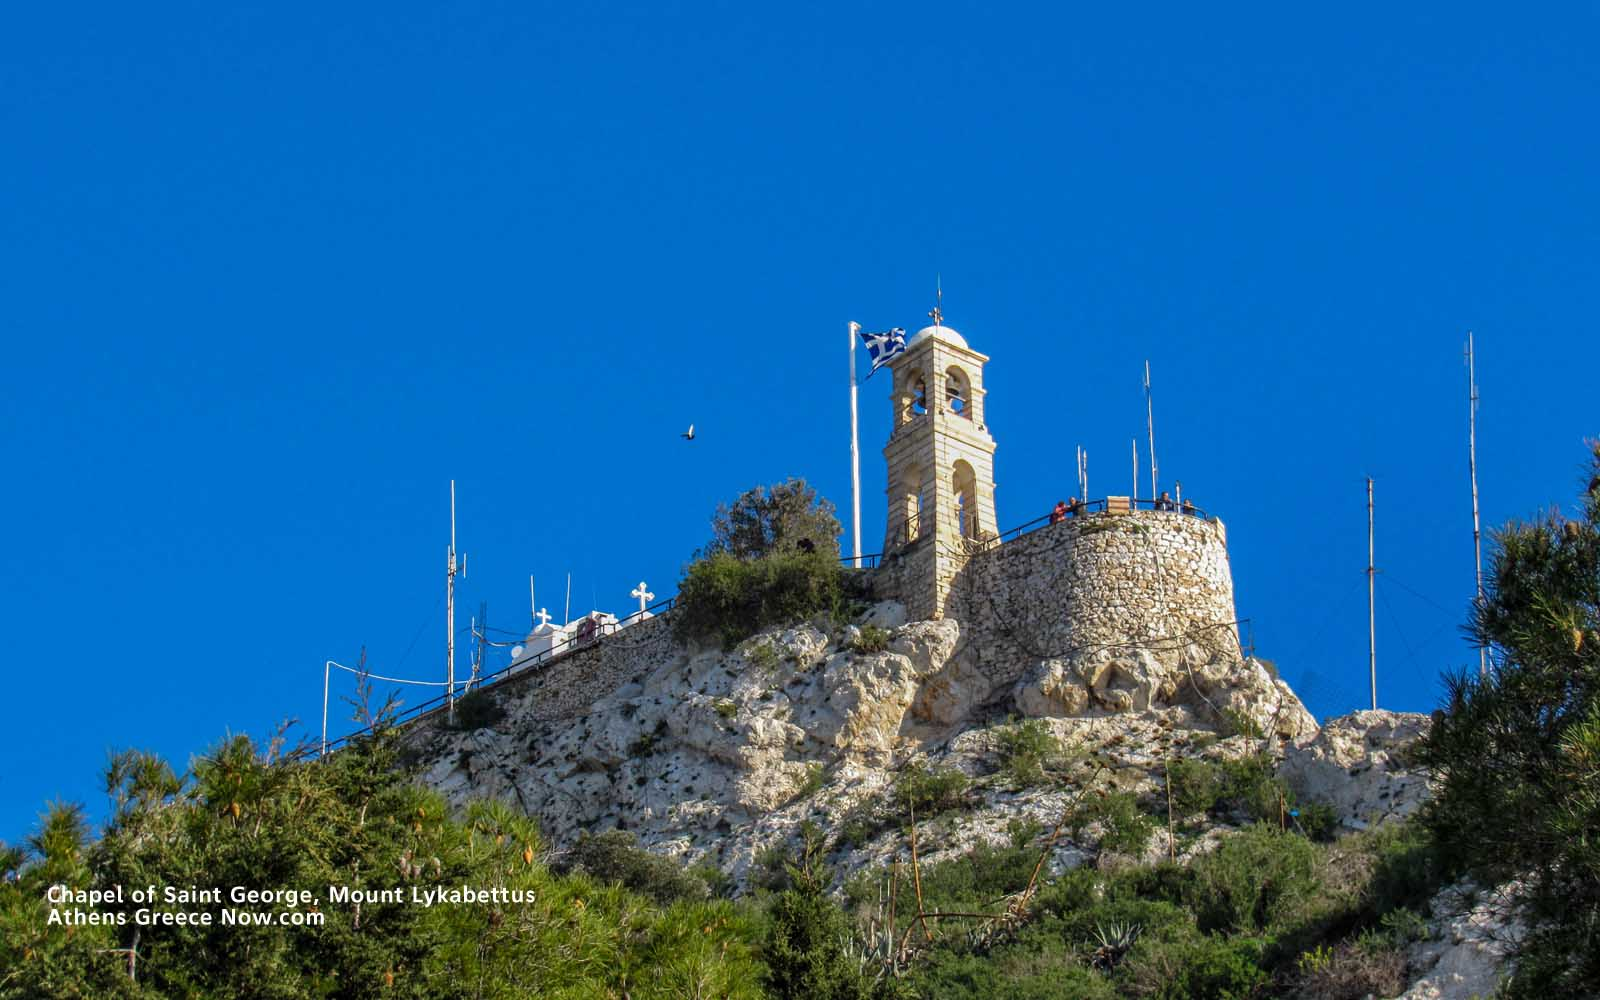 Enlarged - Chapel of Saint George on Mount Lycabettus in Athens Greece